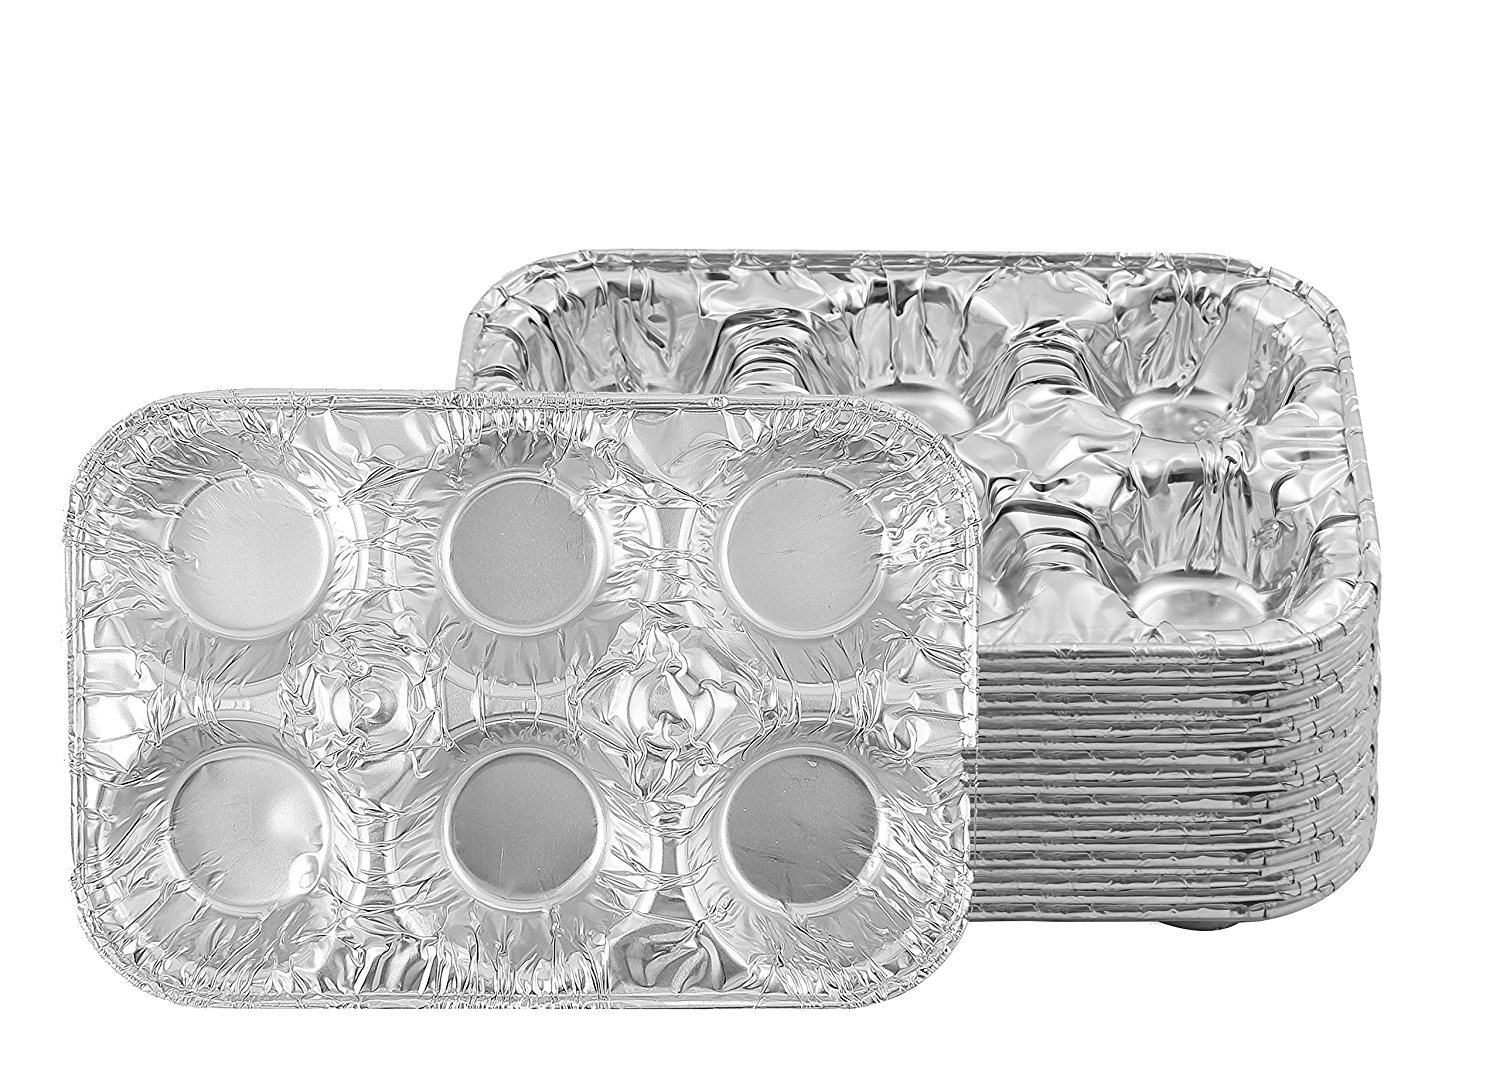 Party Bargains Muffin Pan | 6-Cup Cupcake Aluminum Pans Favorite Muffin Tin Size for Baking Cupcakes - Standard Size | Pack of 20 by Party Bargains